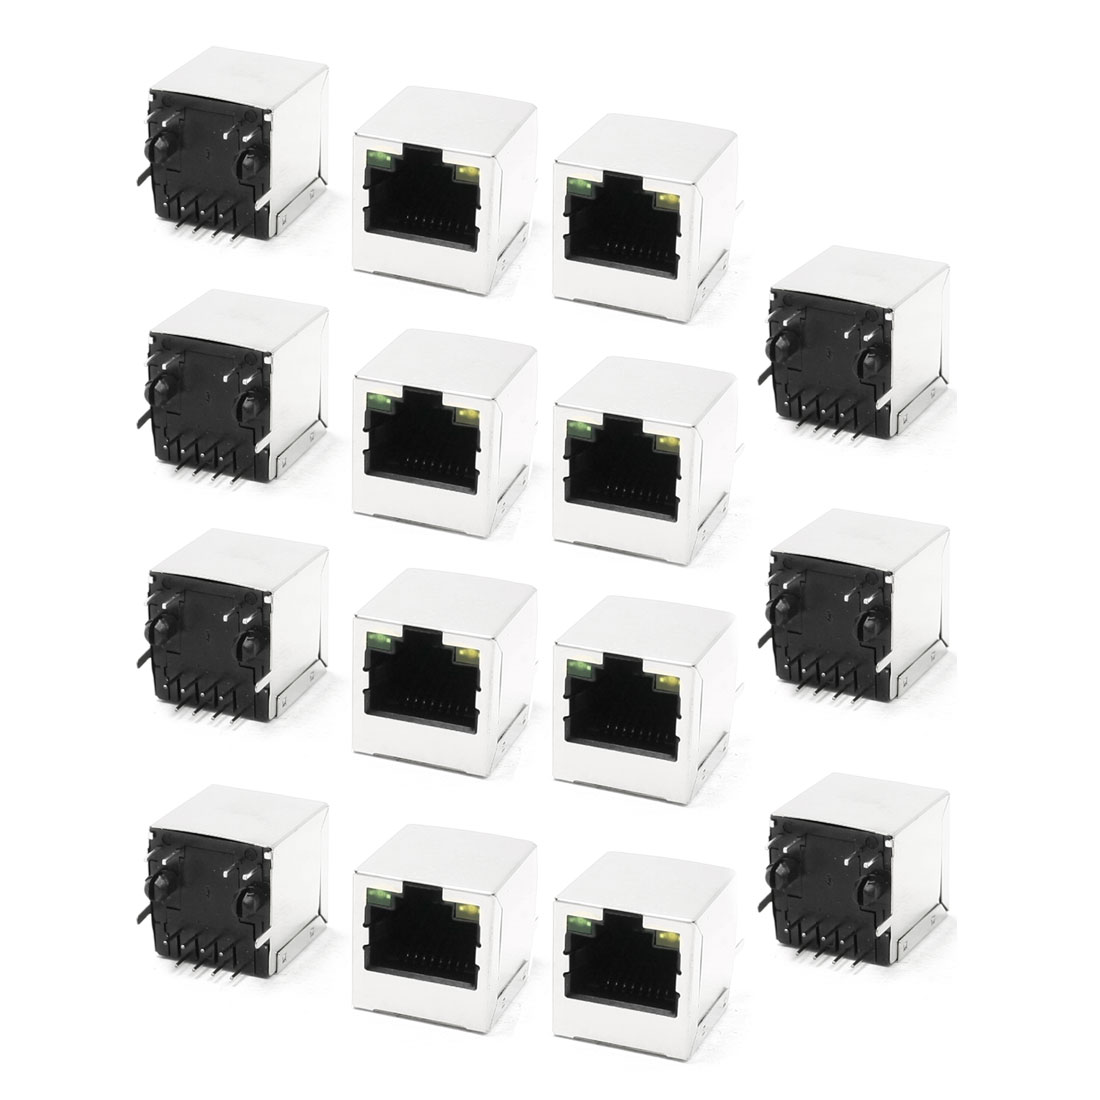 LED Indicator Light RJ45 8P8C Shielded PCB Jacks Network Ports 15 Pcs